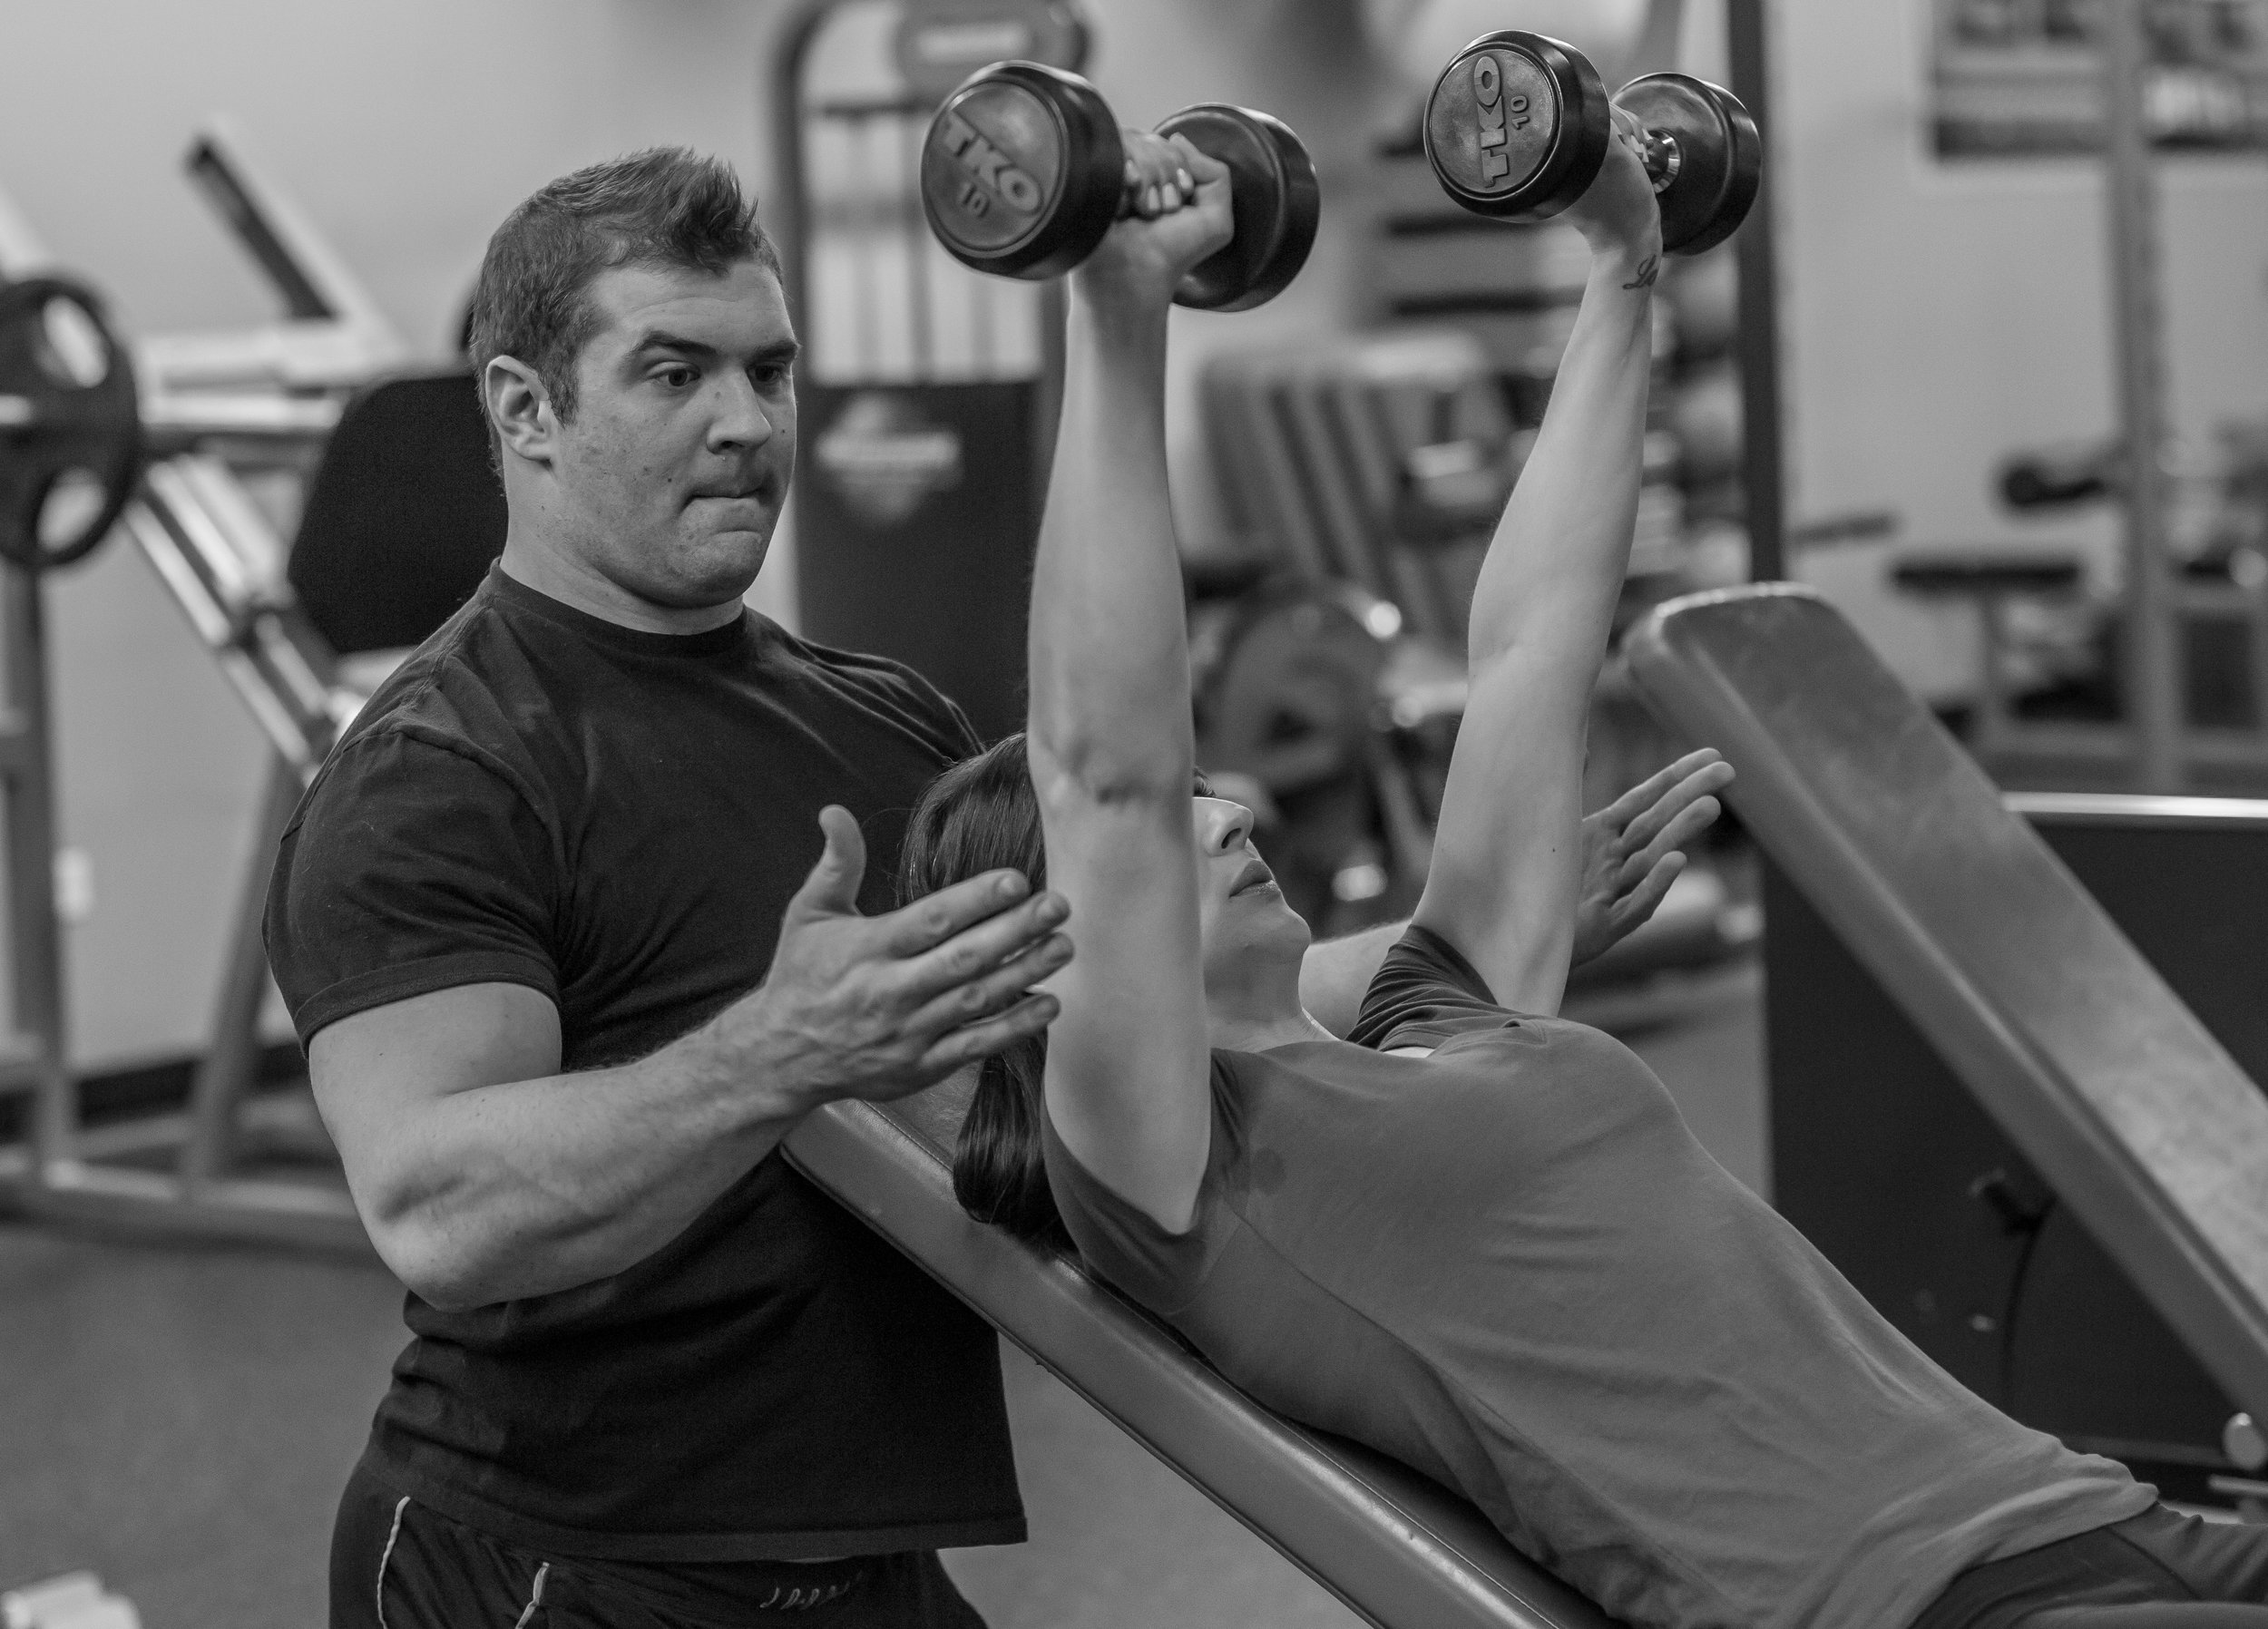 Drake Susral - My programs are always tailored to meet the individual's goals and capabilities. I stand by my programs 100%. have over 10 years of personal training experience and have degree in Health in Wellness. I'm certified through the National Academy of Sports Medicine. I'm also a corrective exercise specialist and have attended many rehabilitation workshops. I put all my skills together to bring the best approach to every client. Teaching people and transforming lives is my passion and I'm blessed that I get to do it everyday.Book a personal training session with Drake ➝